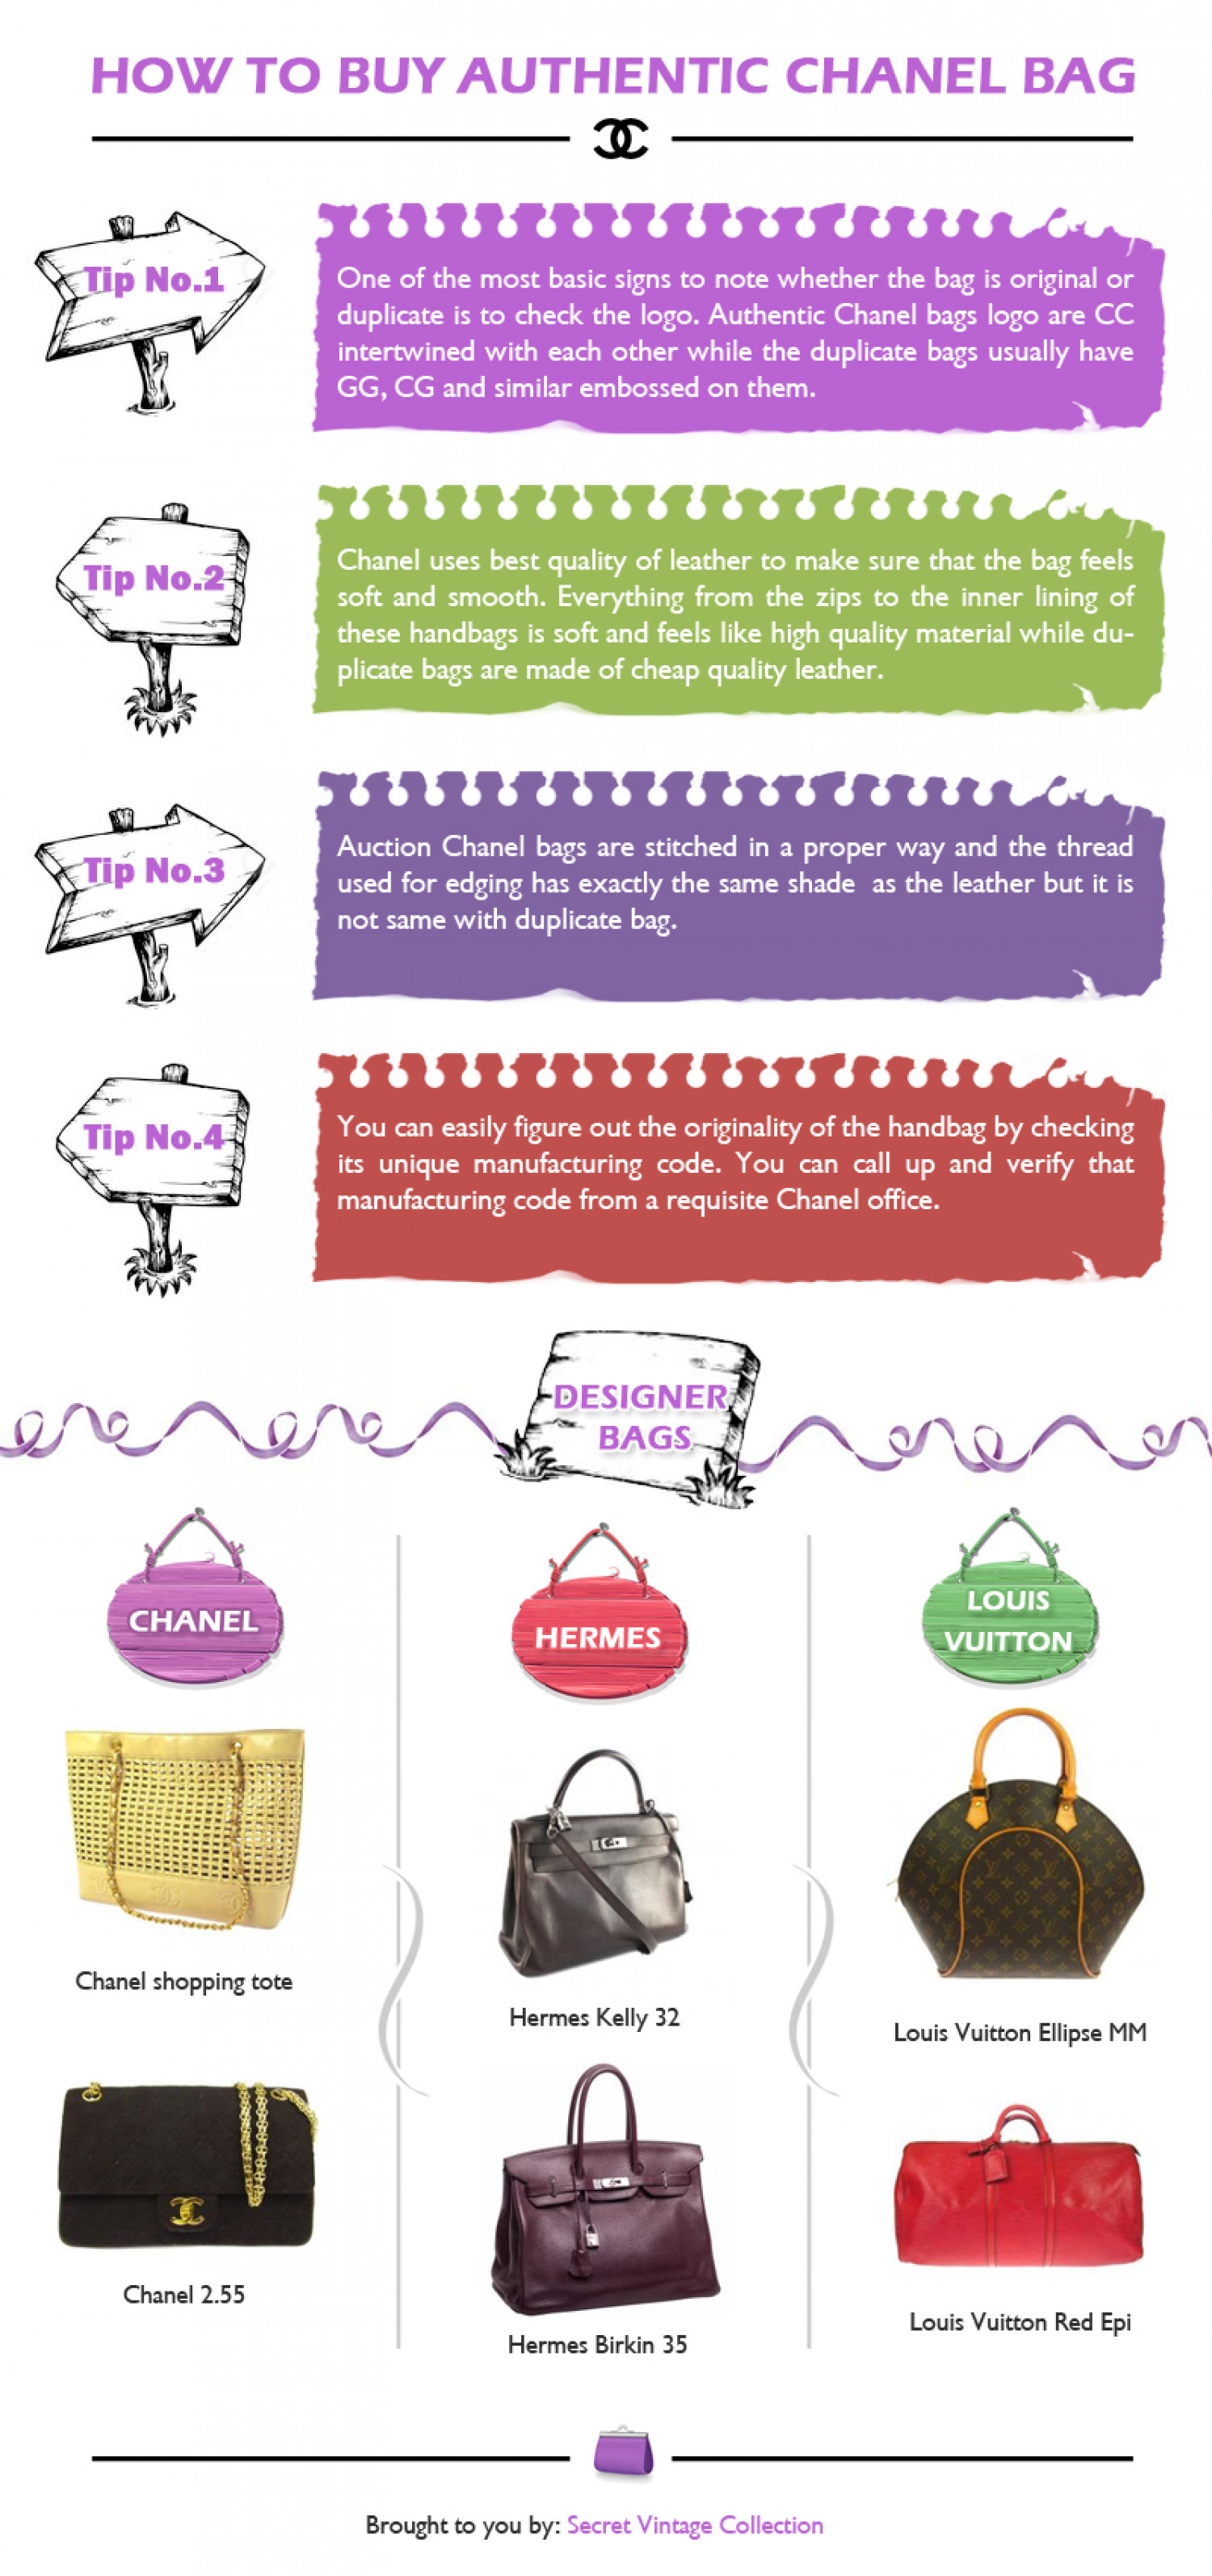 cheap authentic designer handbags 7hwo  How to buy authentic CHANEL BAG Infographic